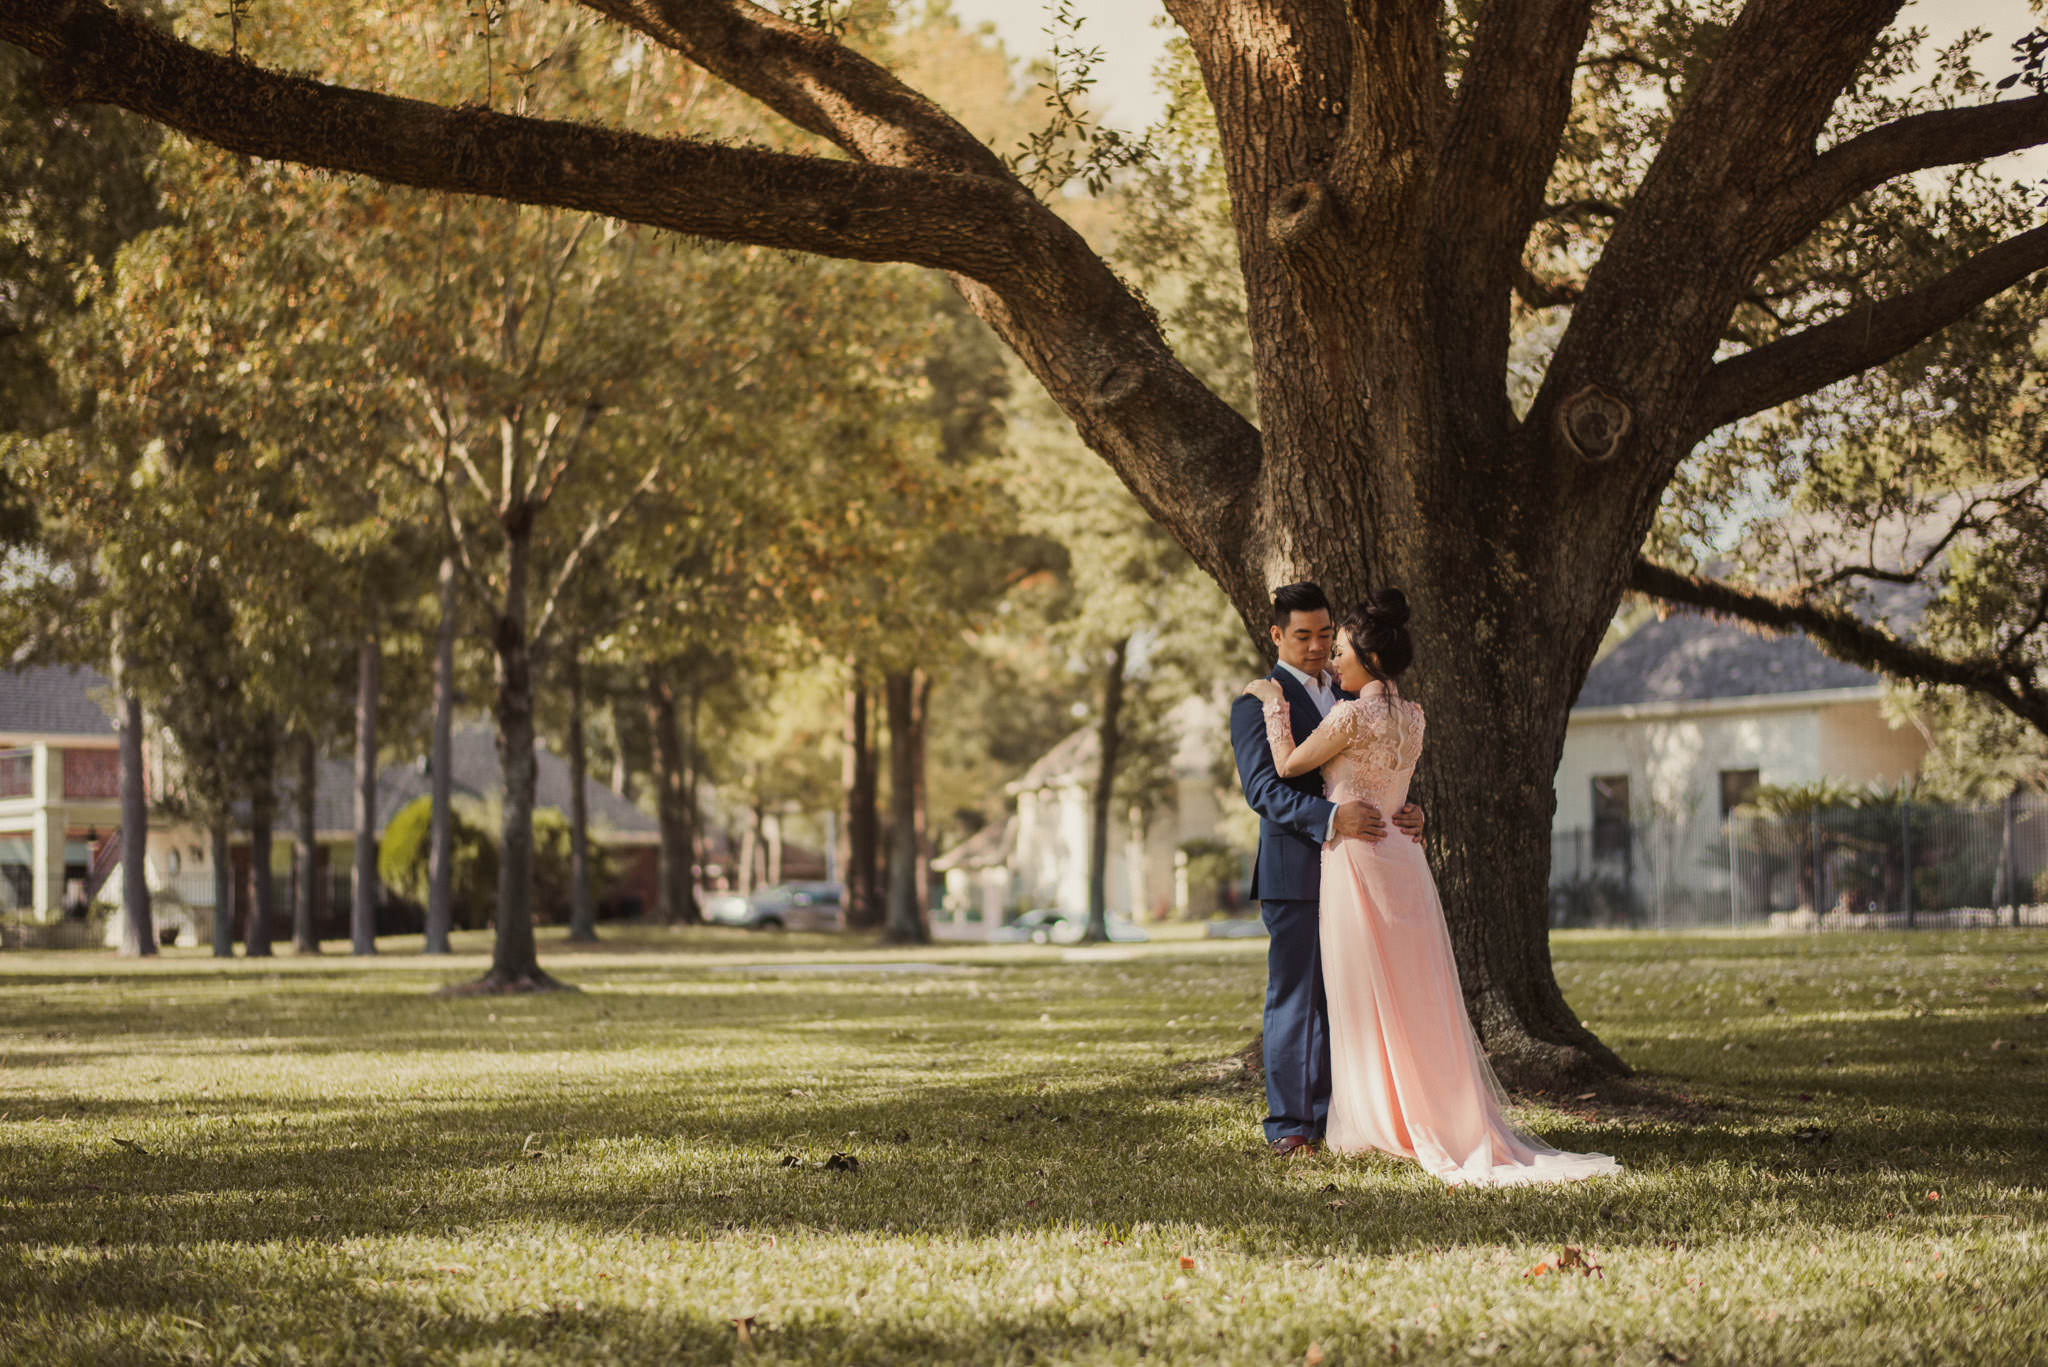 kim-michael-houston-vietnamese-tea-ceremony-engagement-downtown-boulevard-oaks-photographer-46.jpg